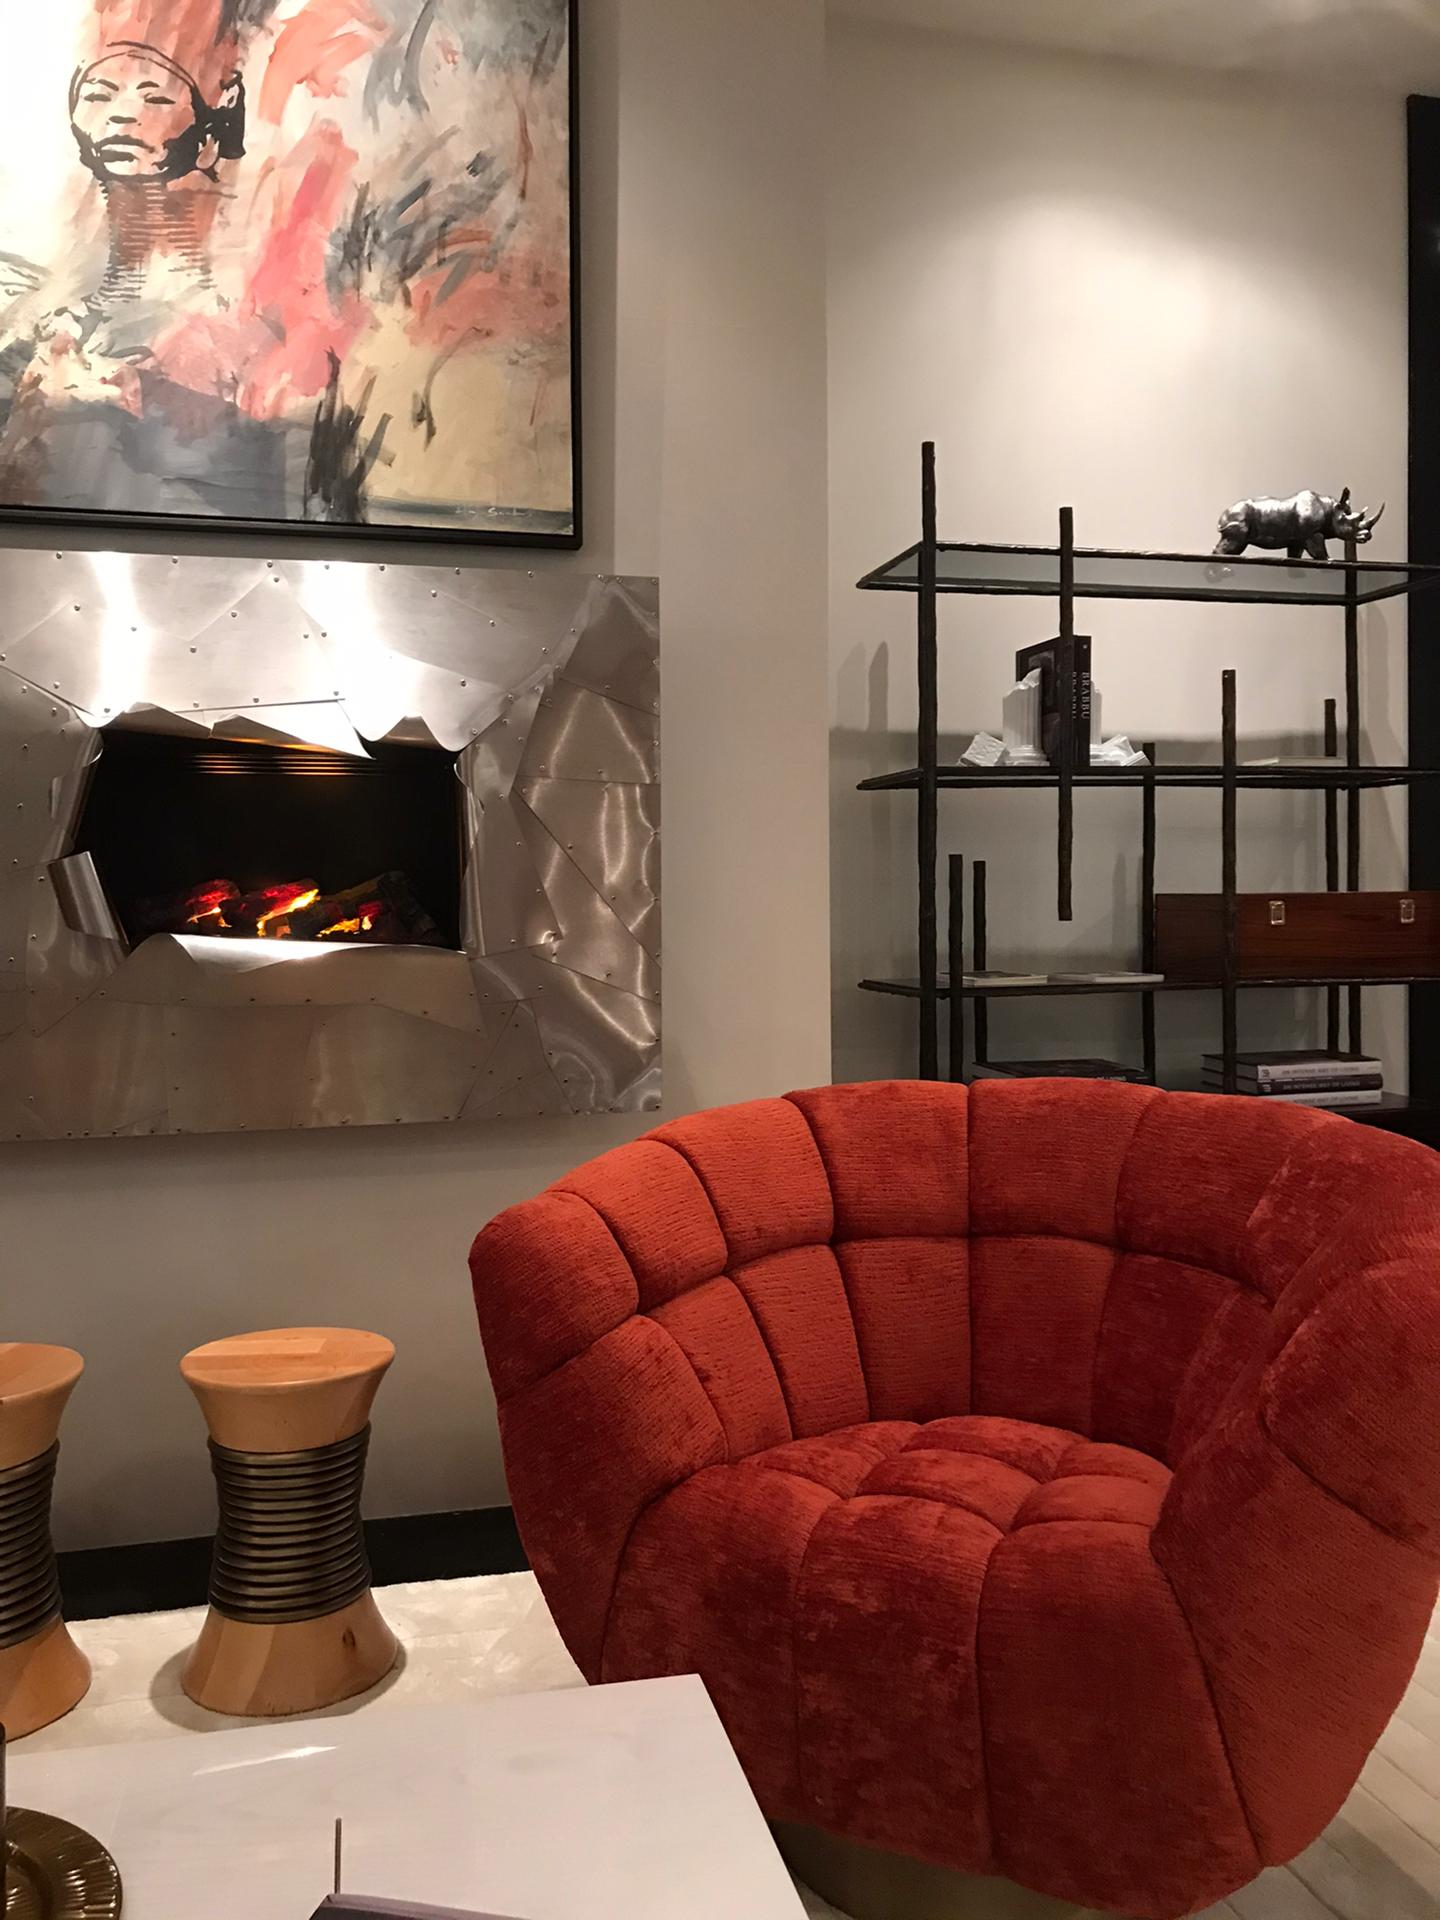 maison et objet 2020 Maison et Objet 2020: Take a Look the Best Chairs! Maison et Objet 2020 Take a Look the Best Chairs 8